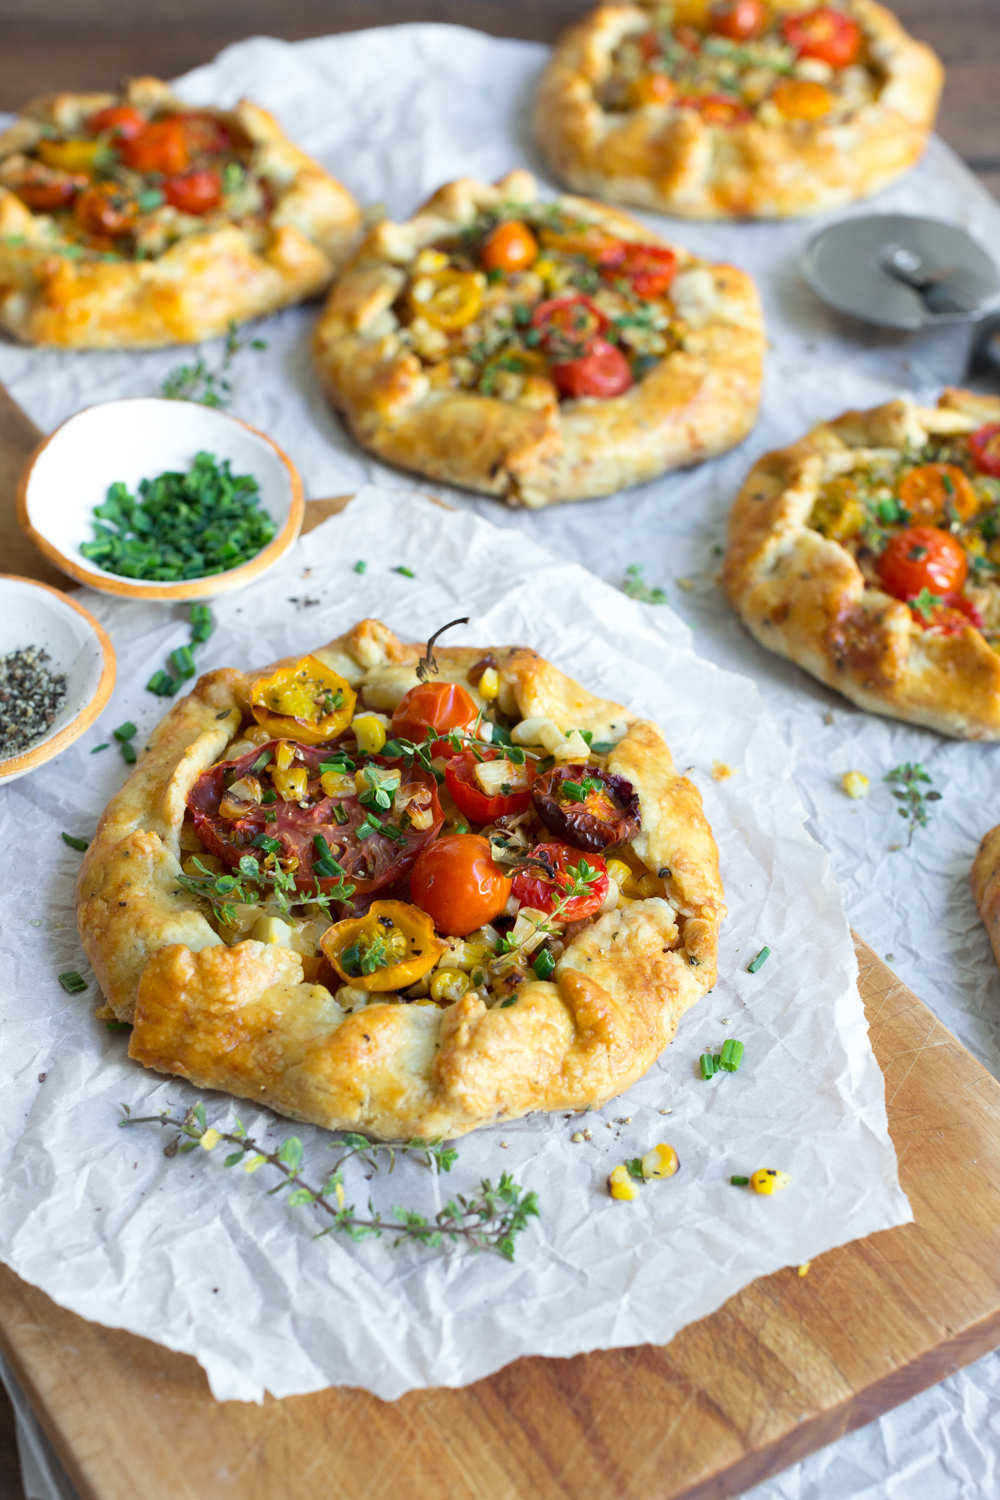 Summer in every bite of these Heirloom Tomato & Grilled Corn Galettes with Cheddar Crust.